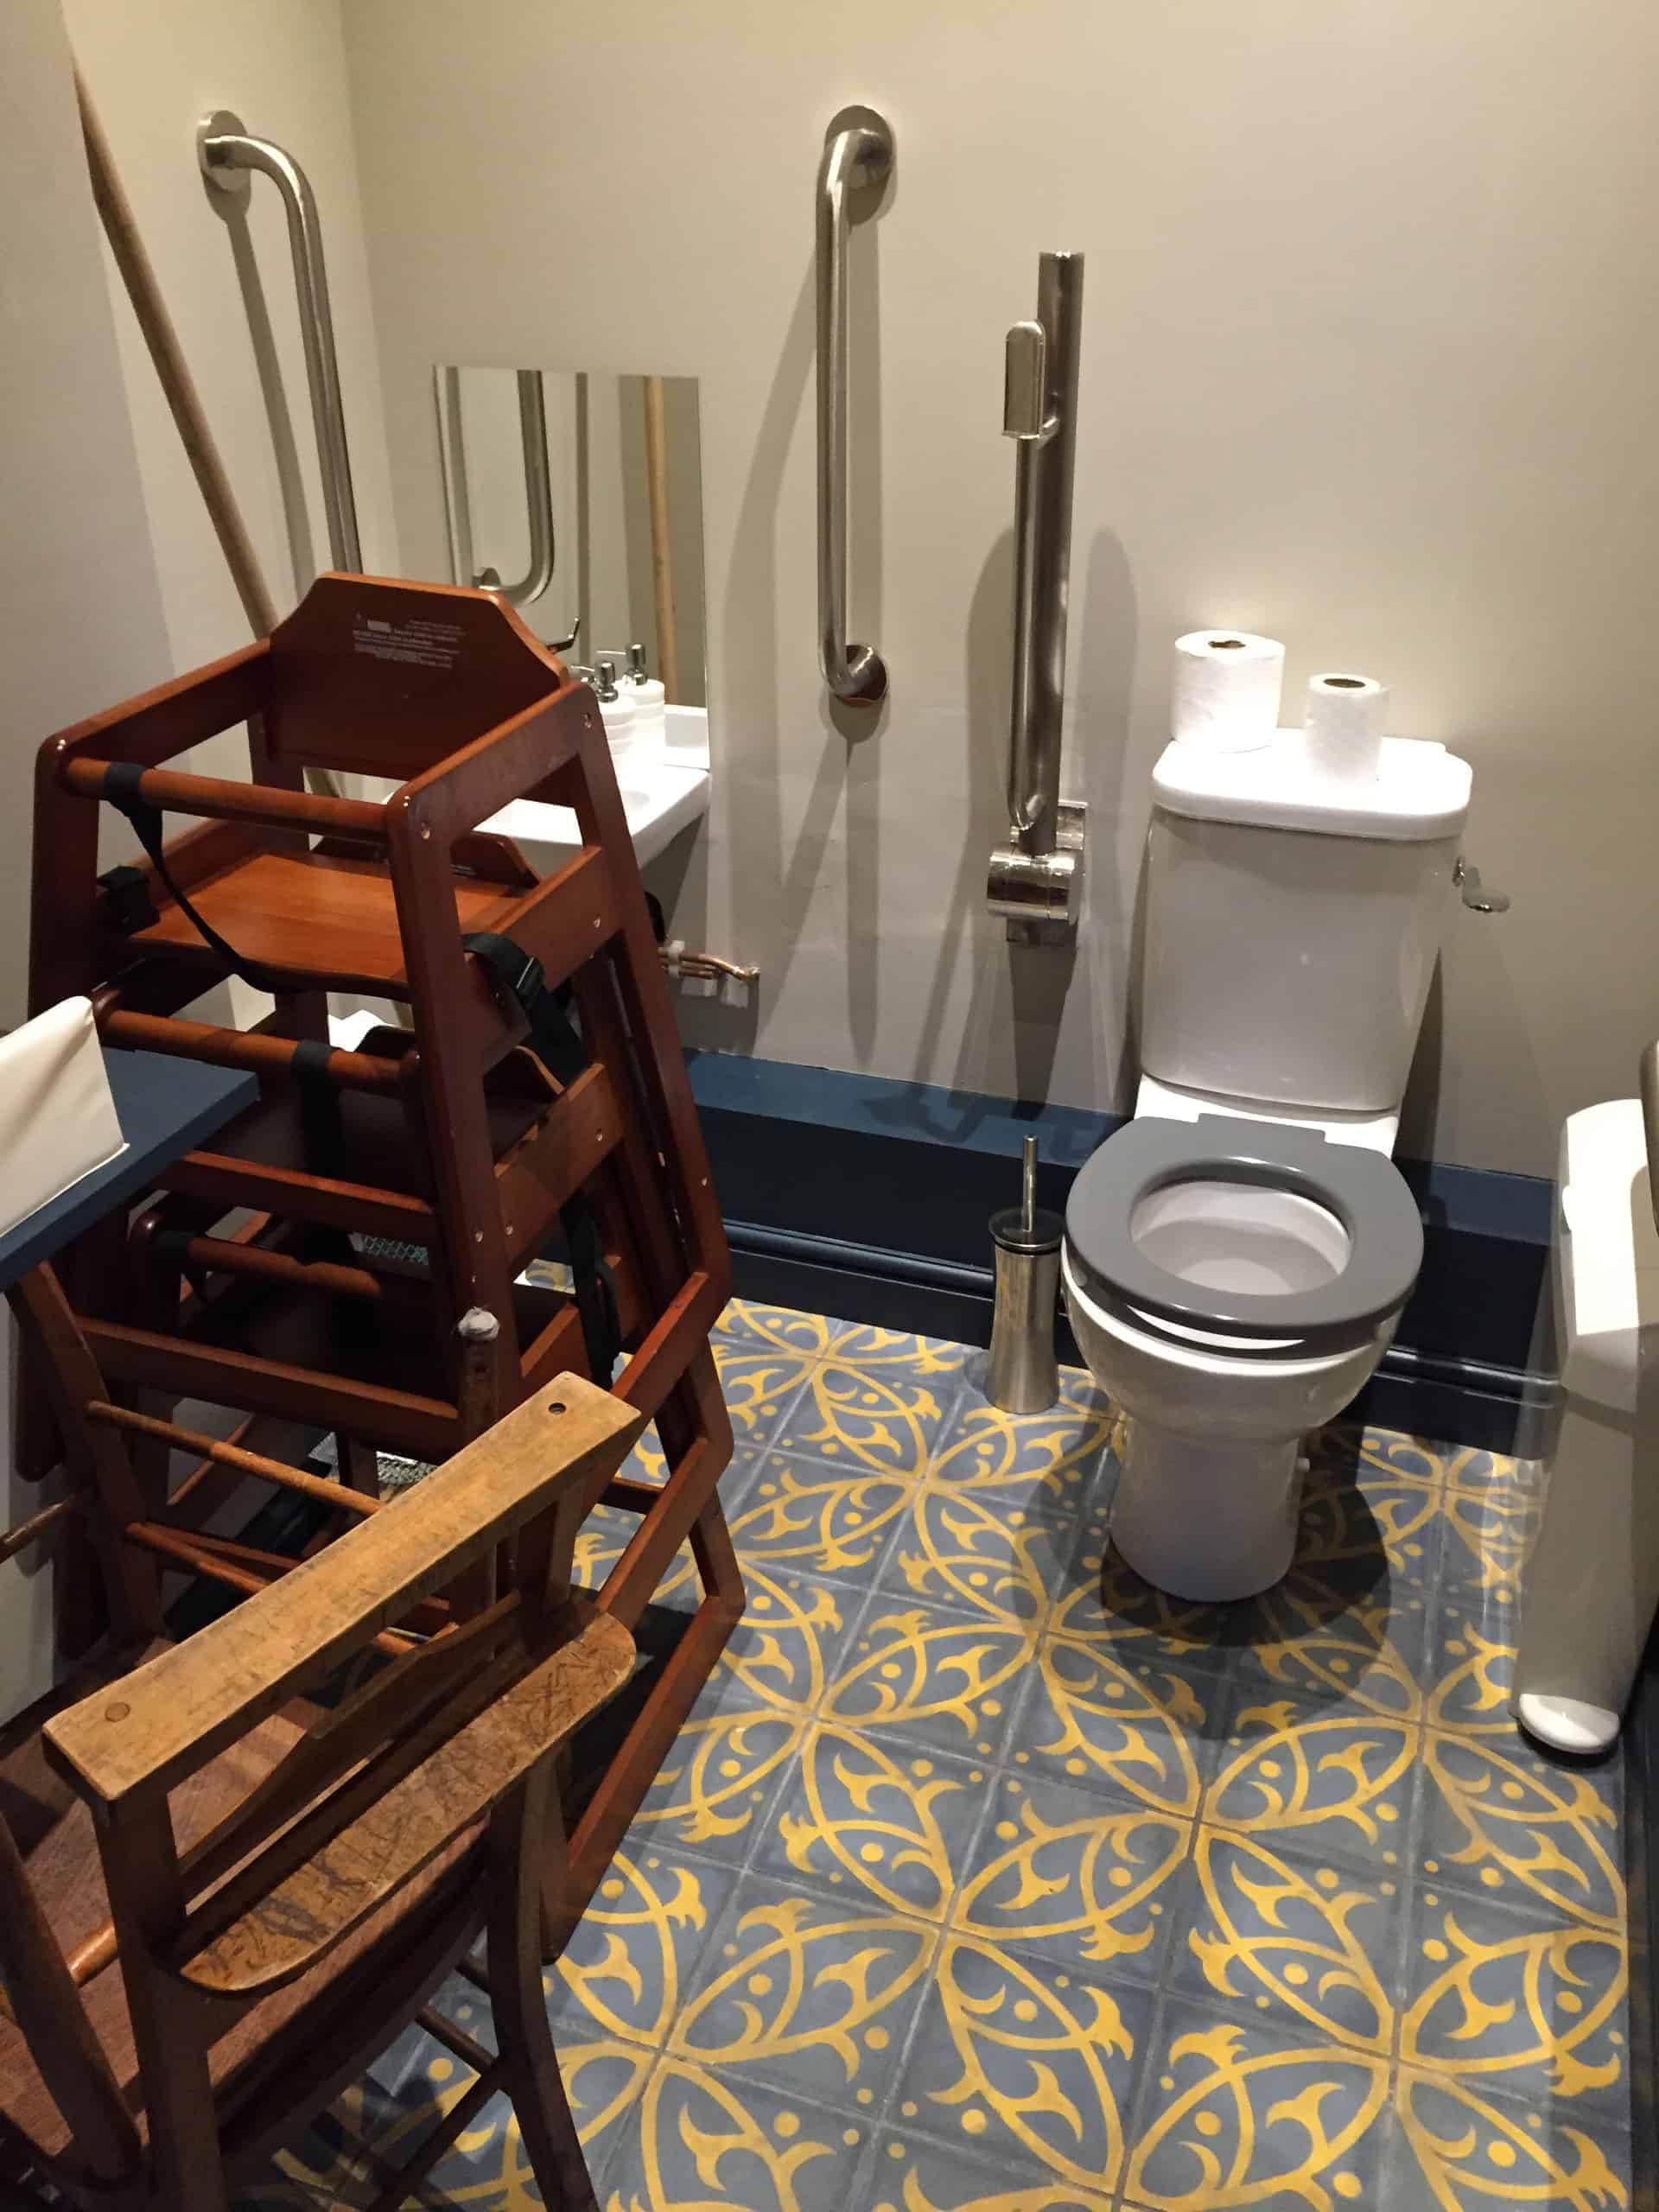 Guess what this won't win 'Best Disabled Loo'!